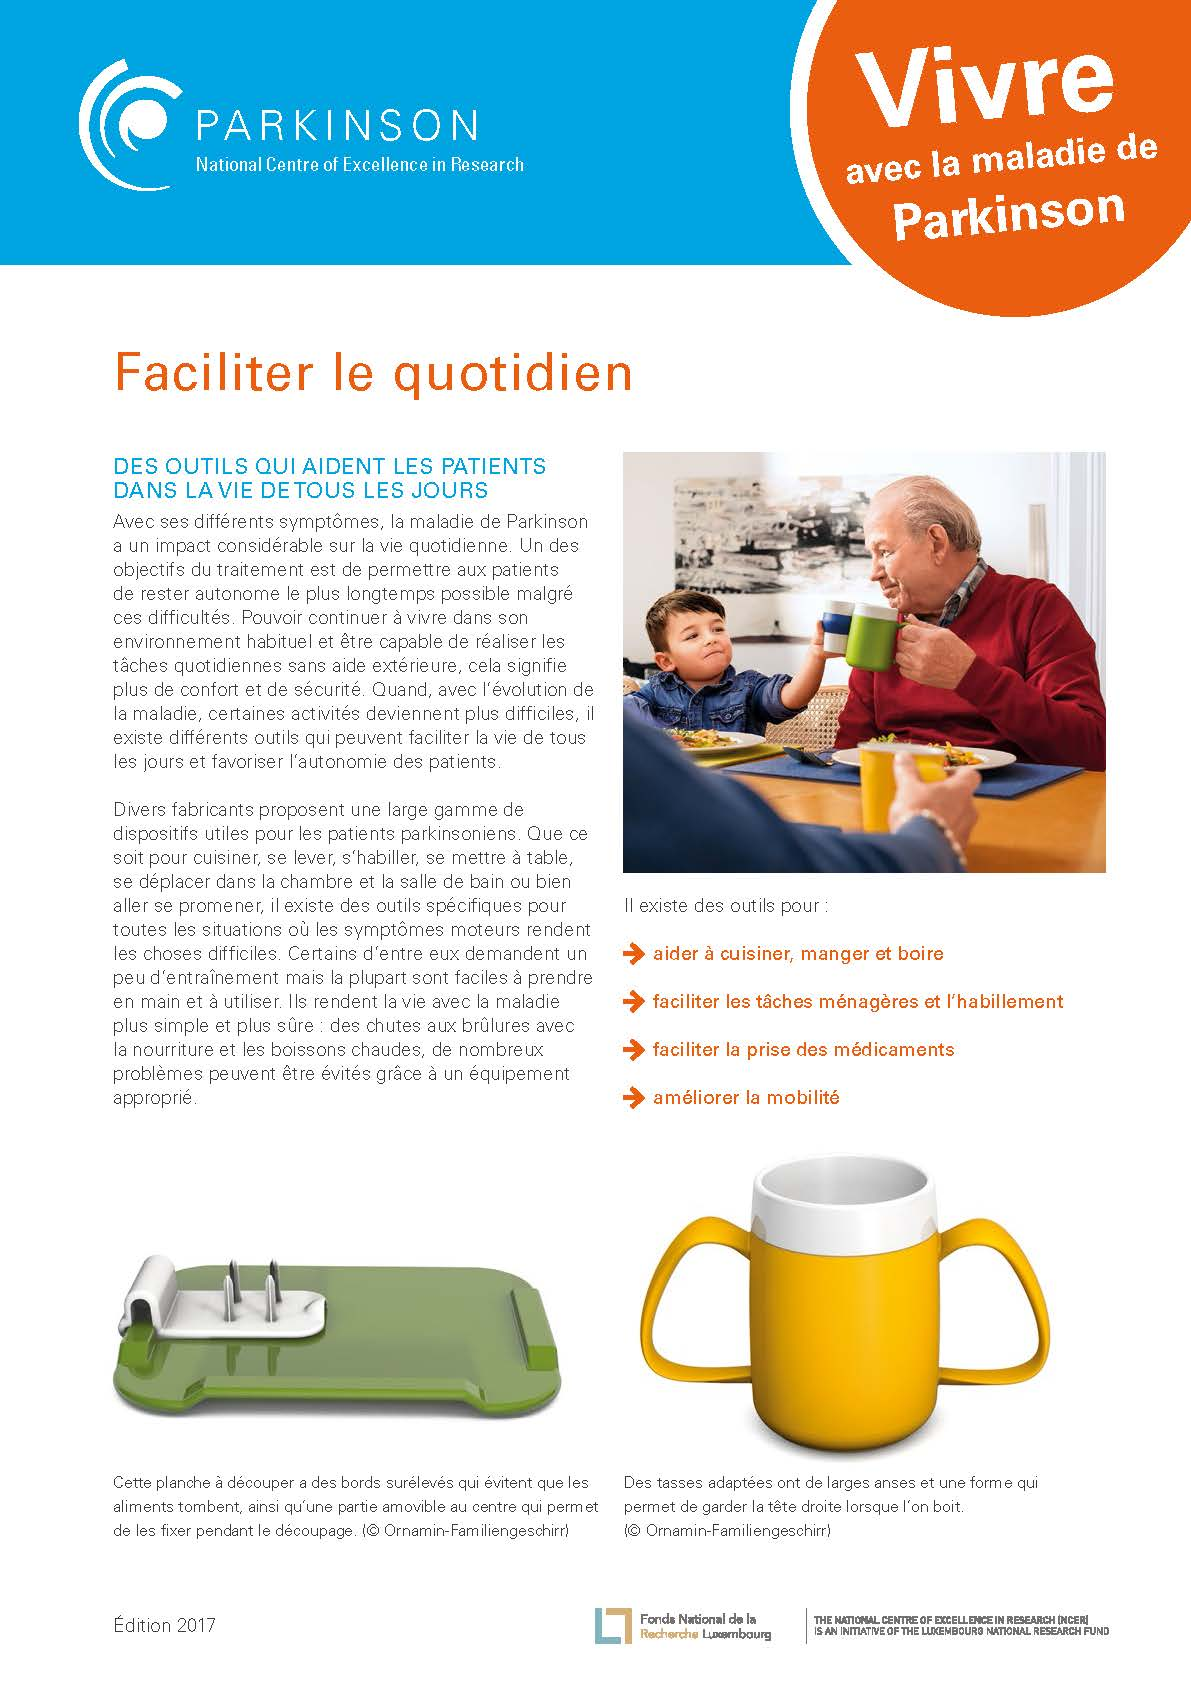 Fact sheet - la maladie de Parkinson - faciliter le quotidien